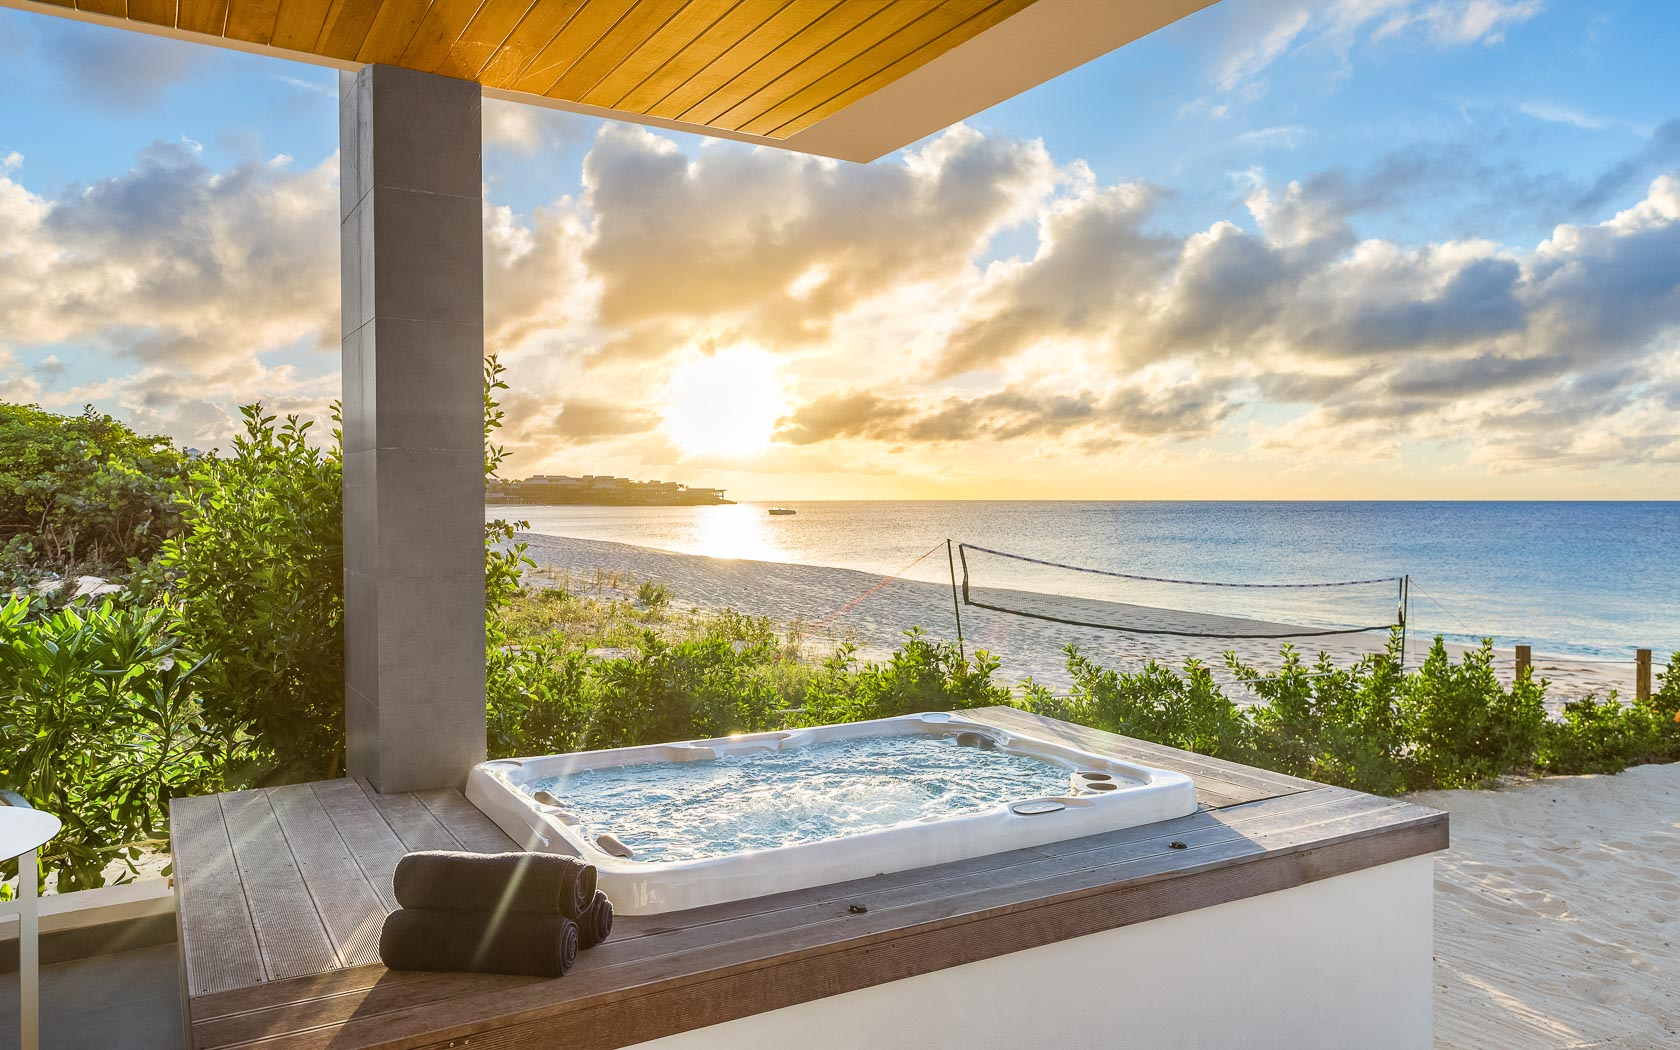 shot of hot tub while sun rises over ocean